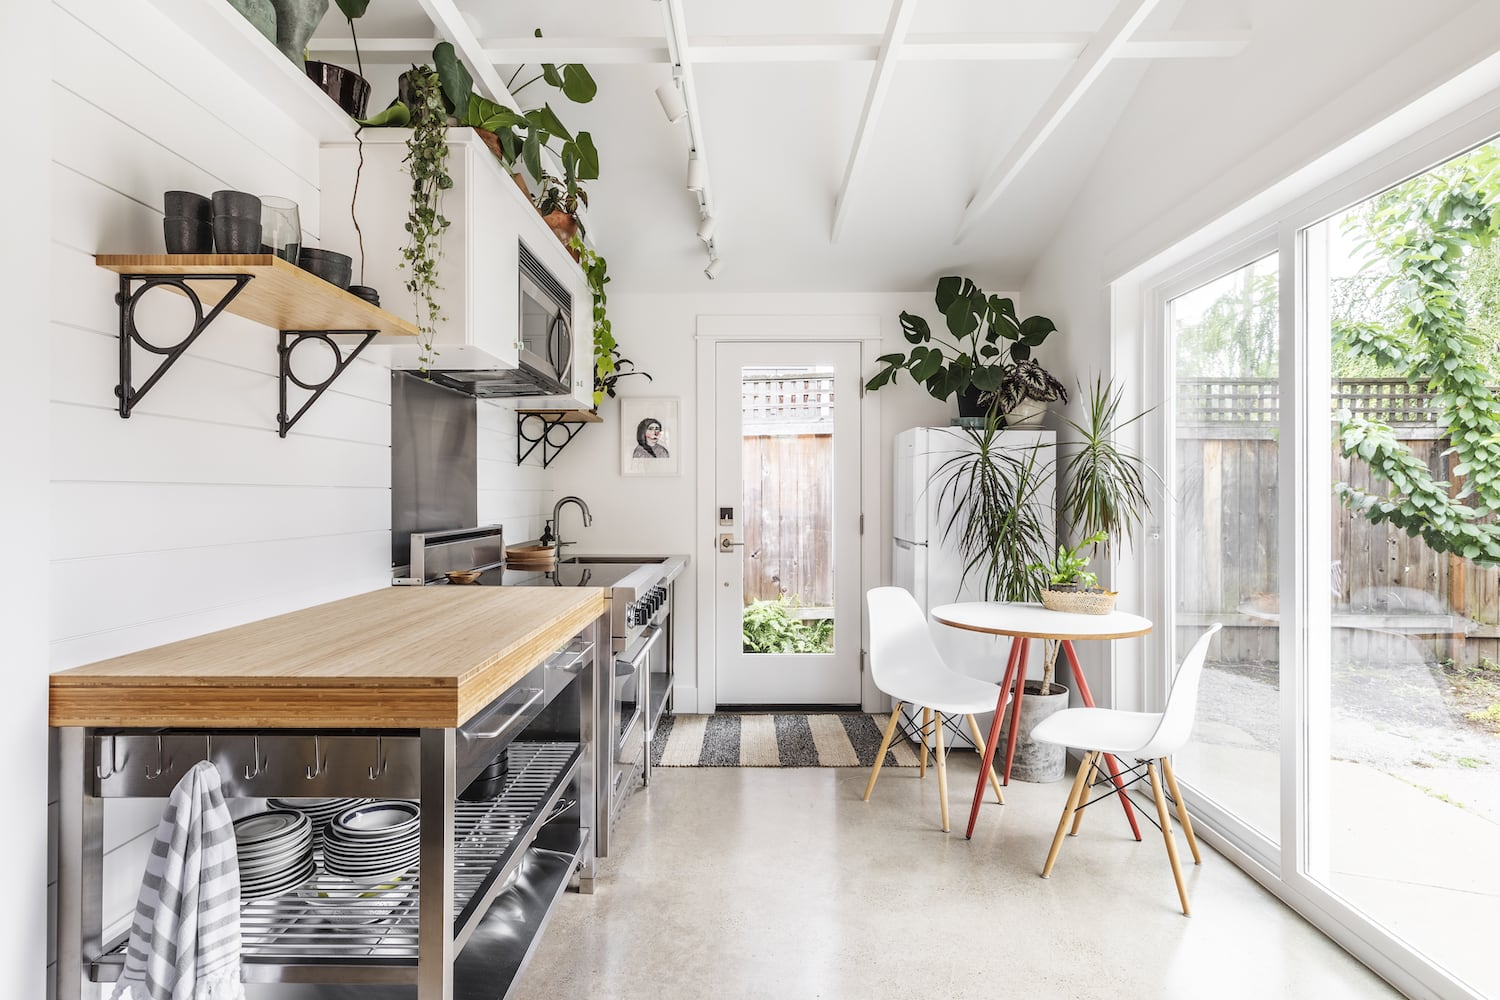 Beech Haus ADU - Kitchen, Vaulted Ceiling, Open Shelving, Polished Concrete Flooring, Stainless Steel